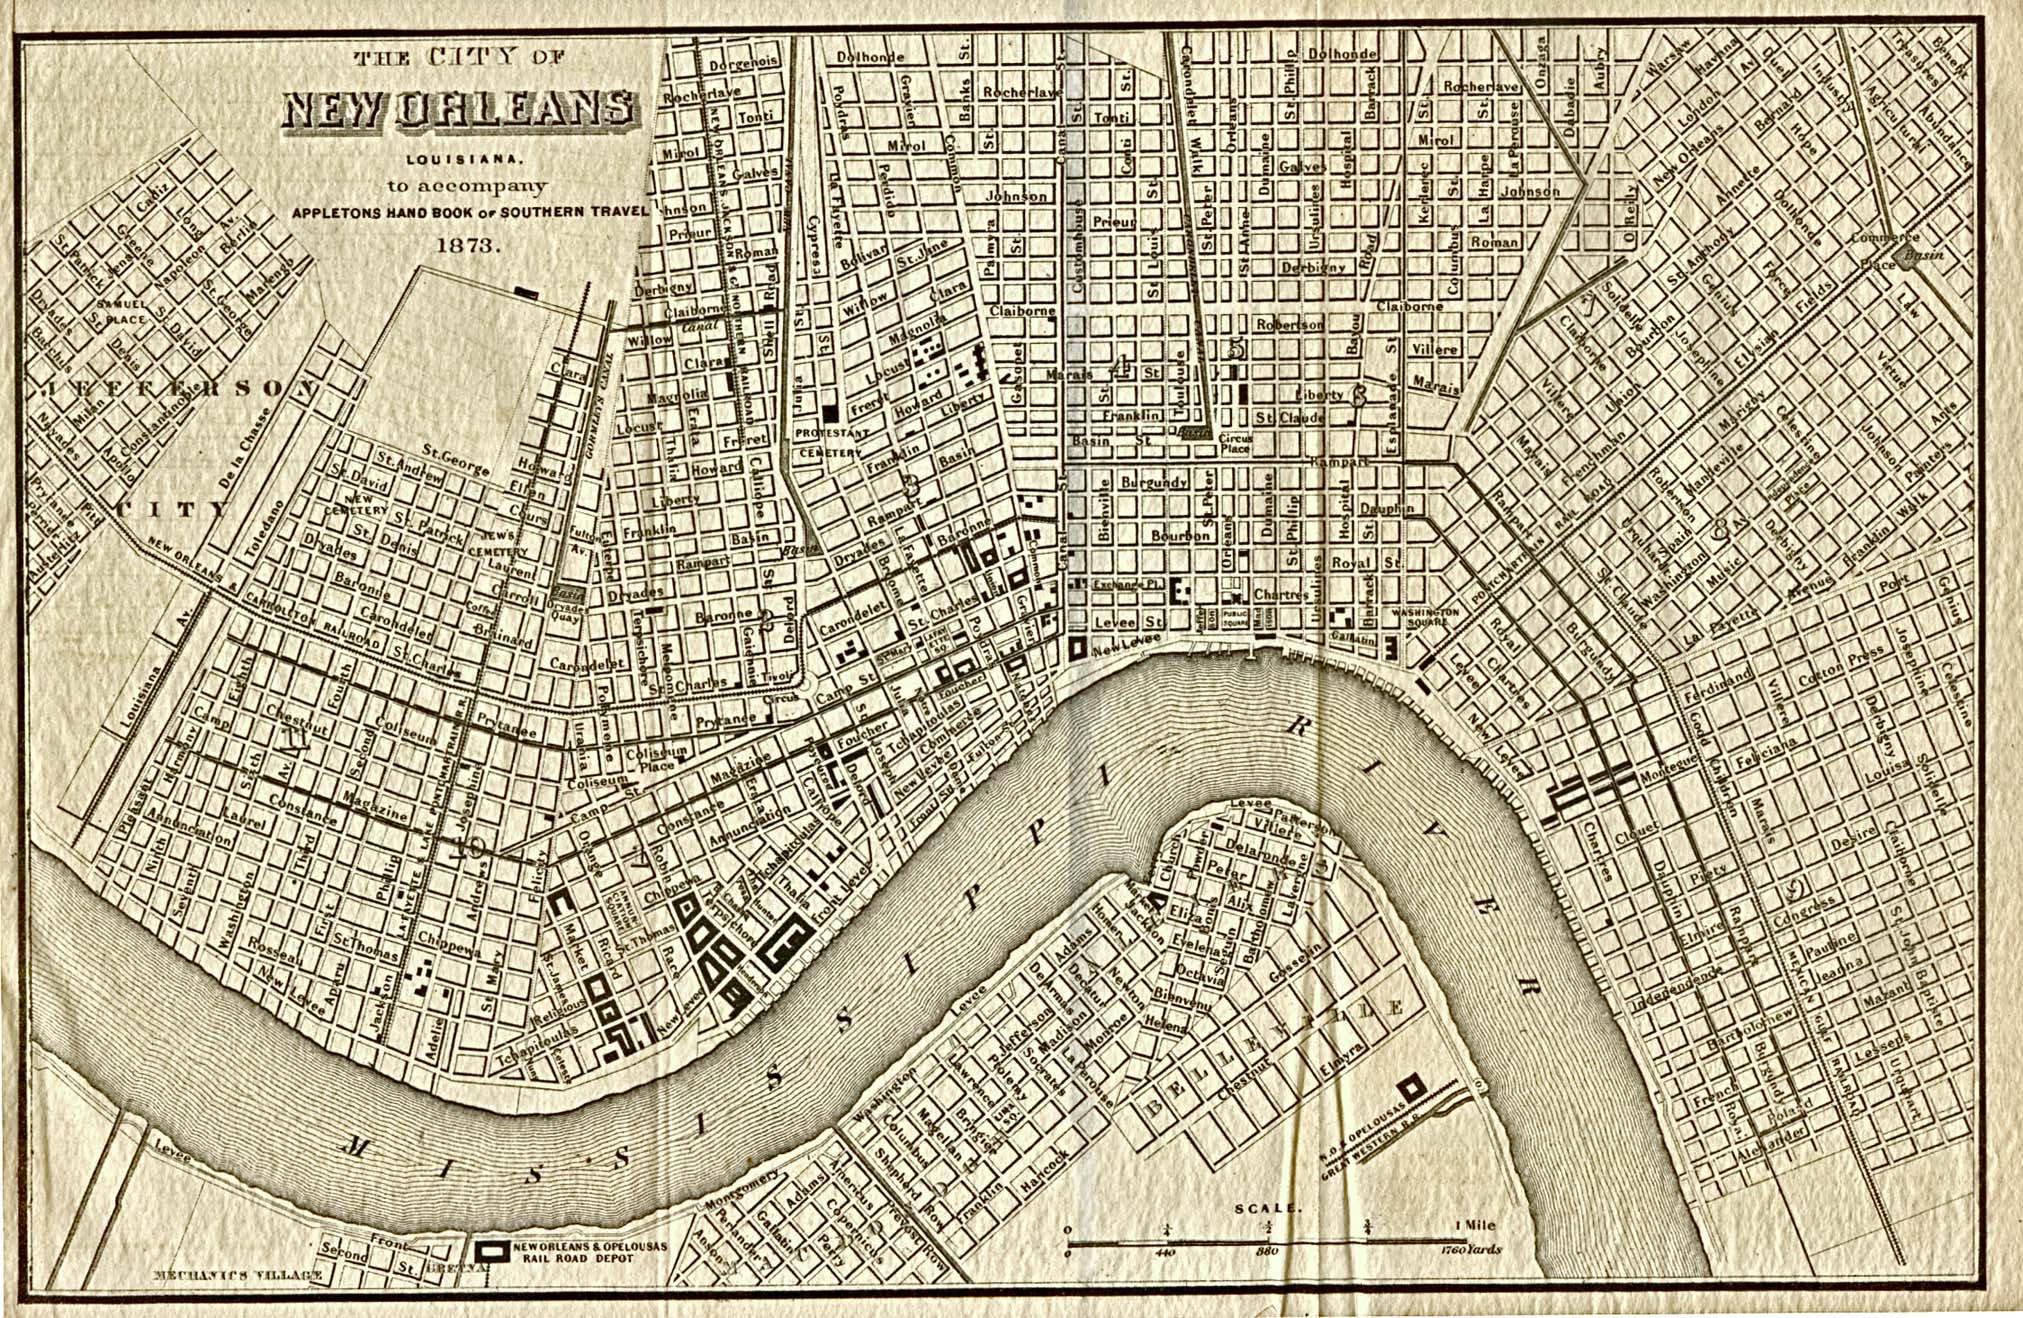 historical map of new orleans Louisiana Maps Perry Castaneda Map Collection Ut Library Online historical map of new orleans